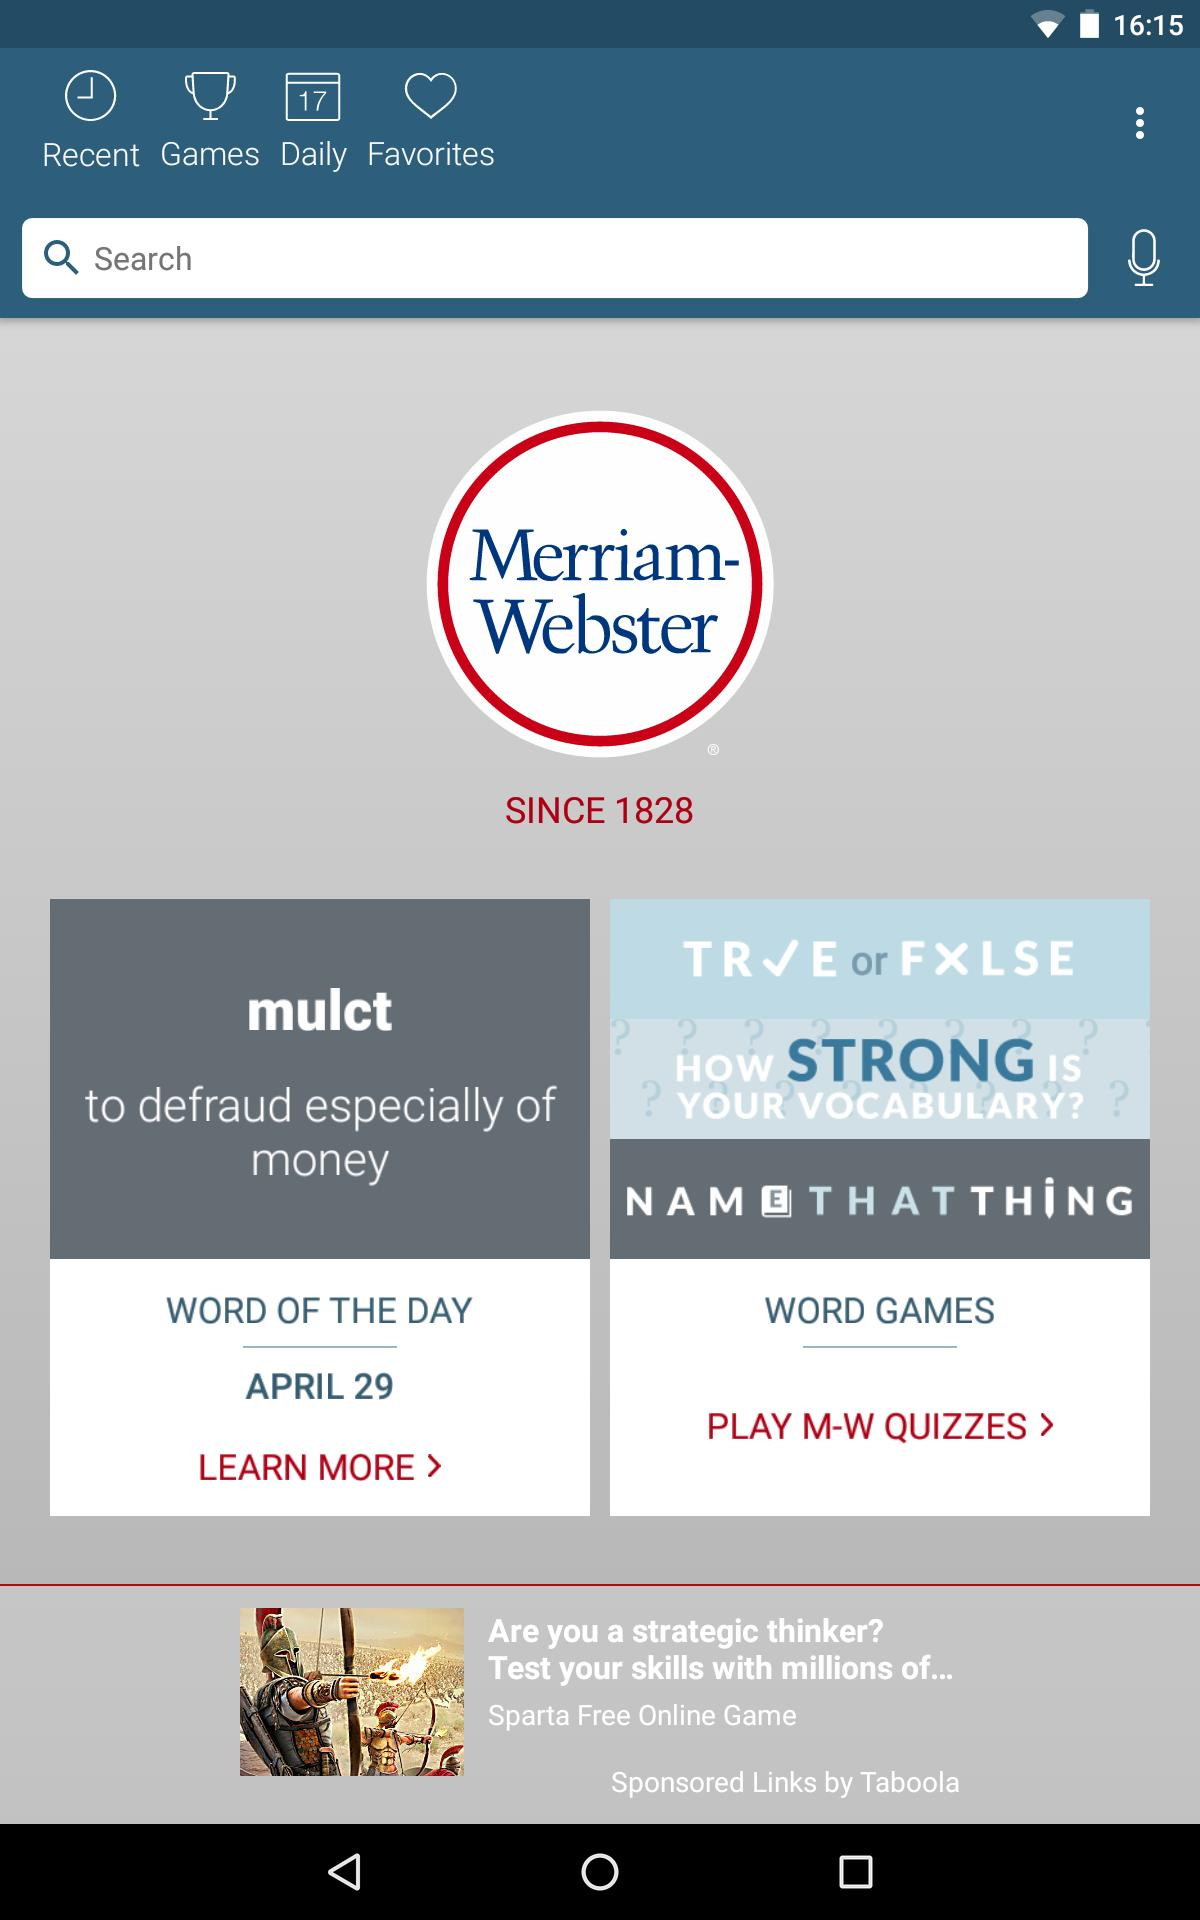 Dictionary - Merriam-Webster 4.3.4 Screenshot 10